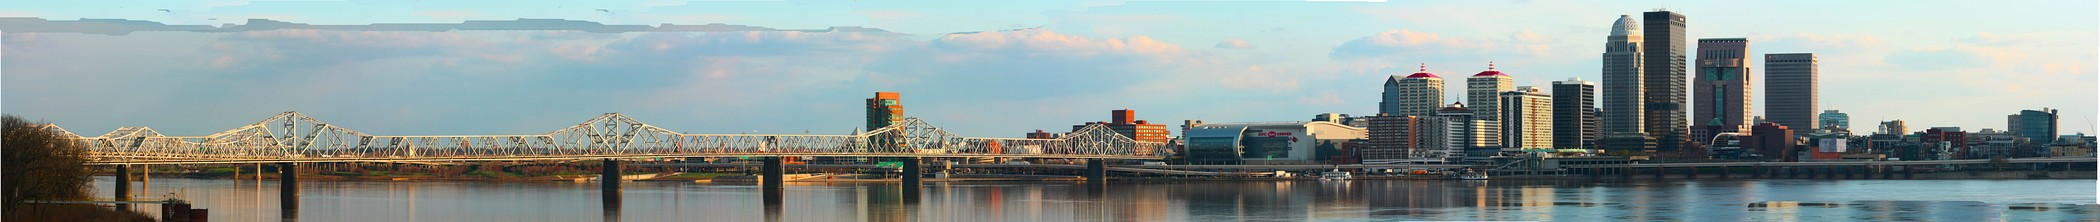 Louisville Panorama from Jeffersonville, Indiana. Second St Bridge on the foreground